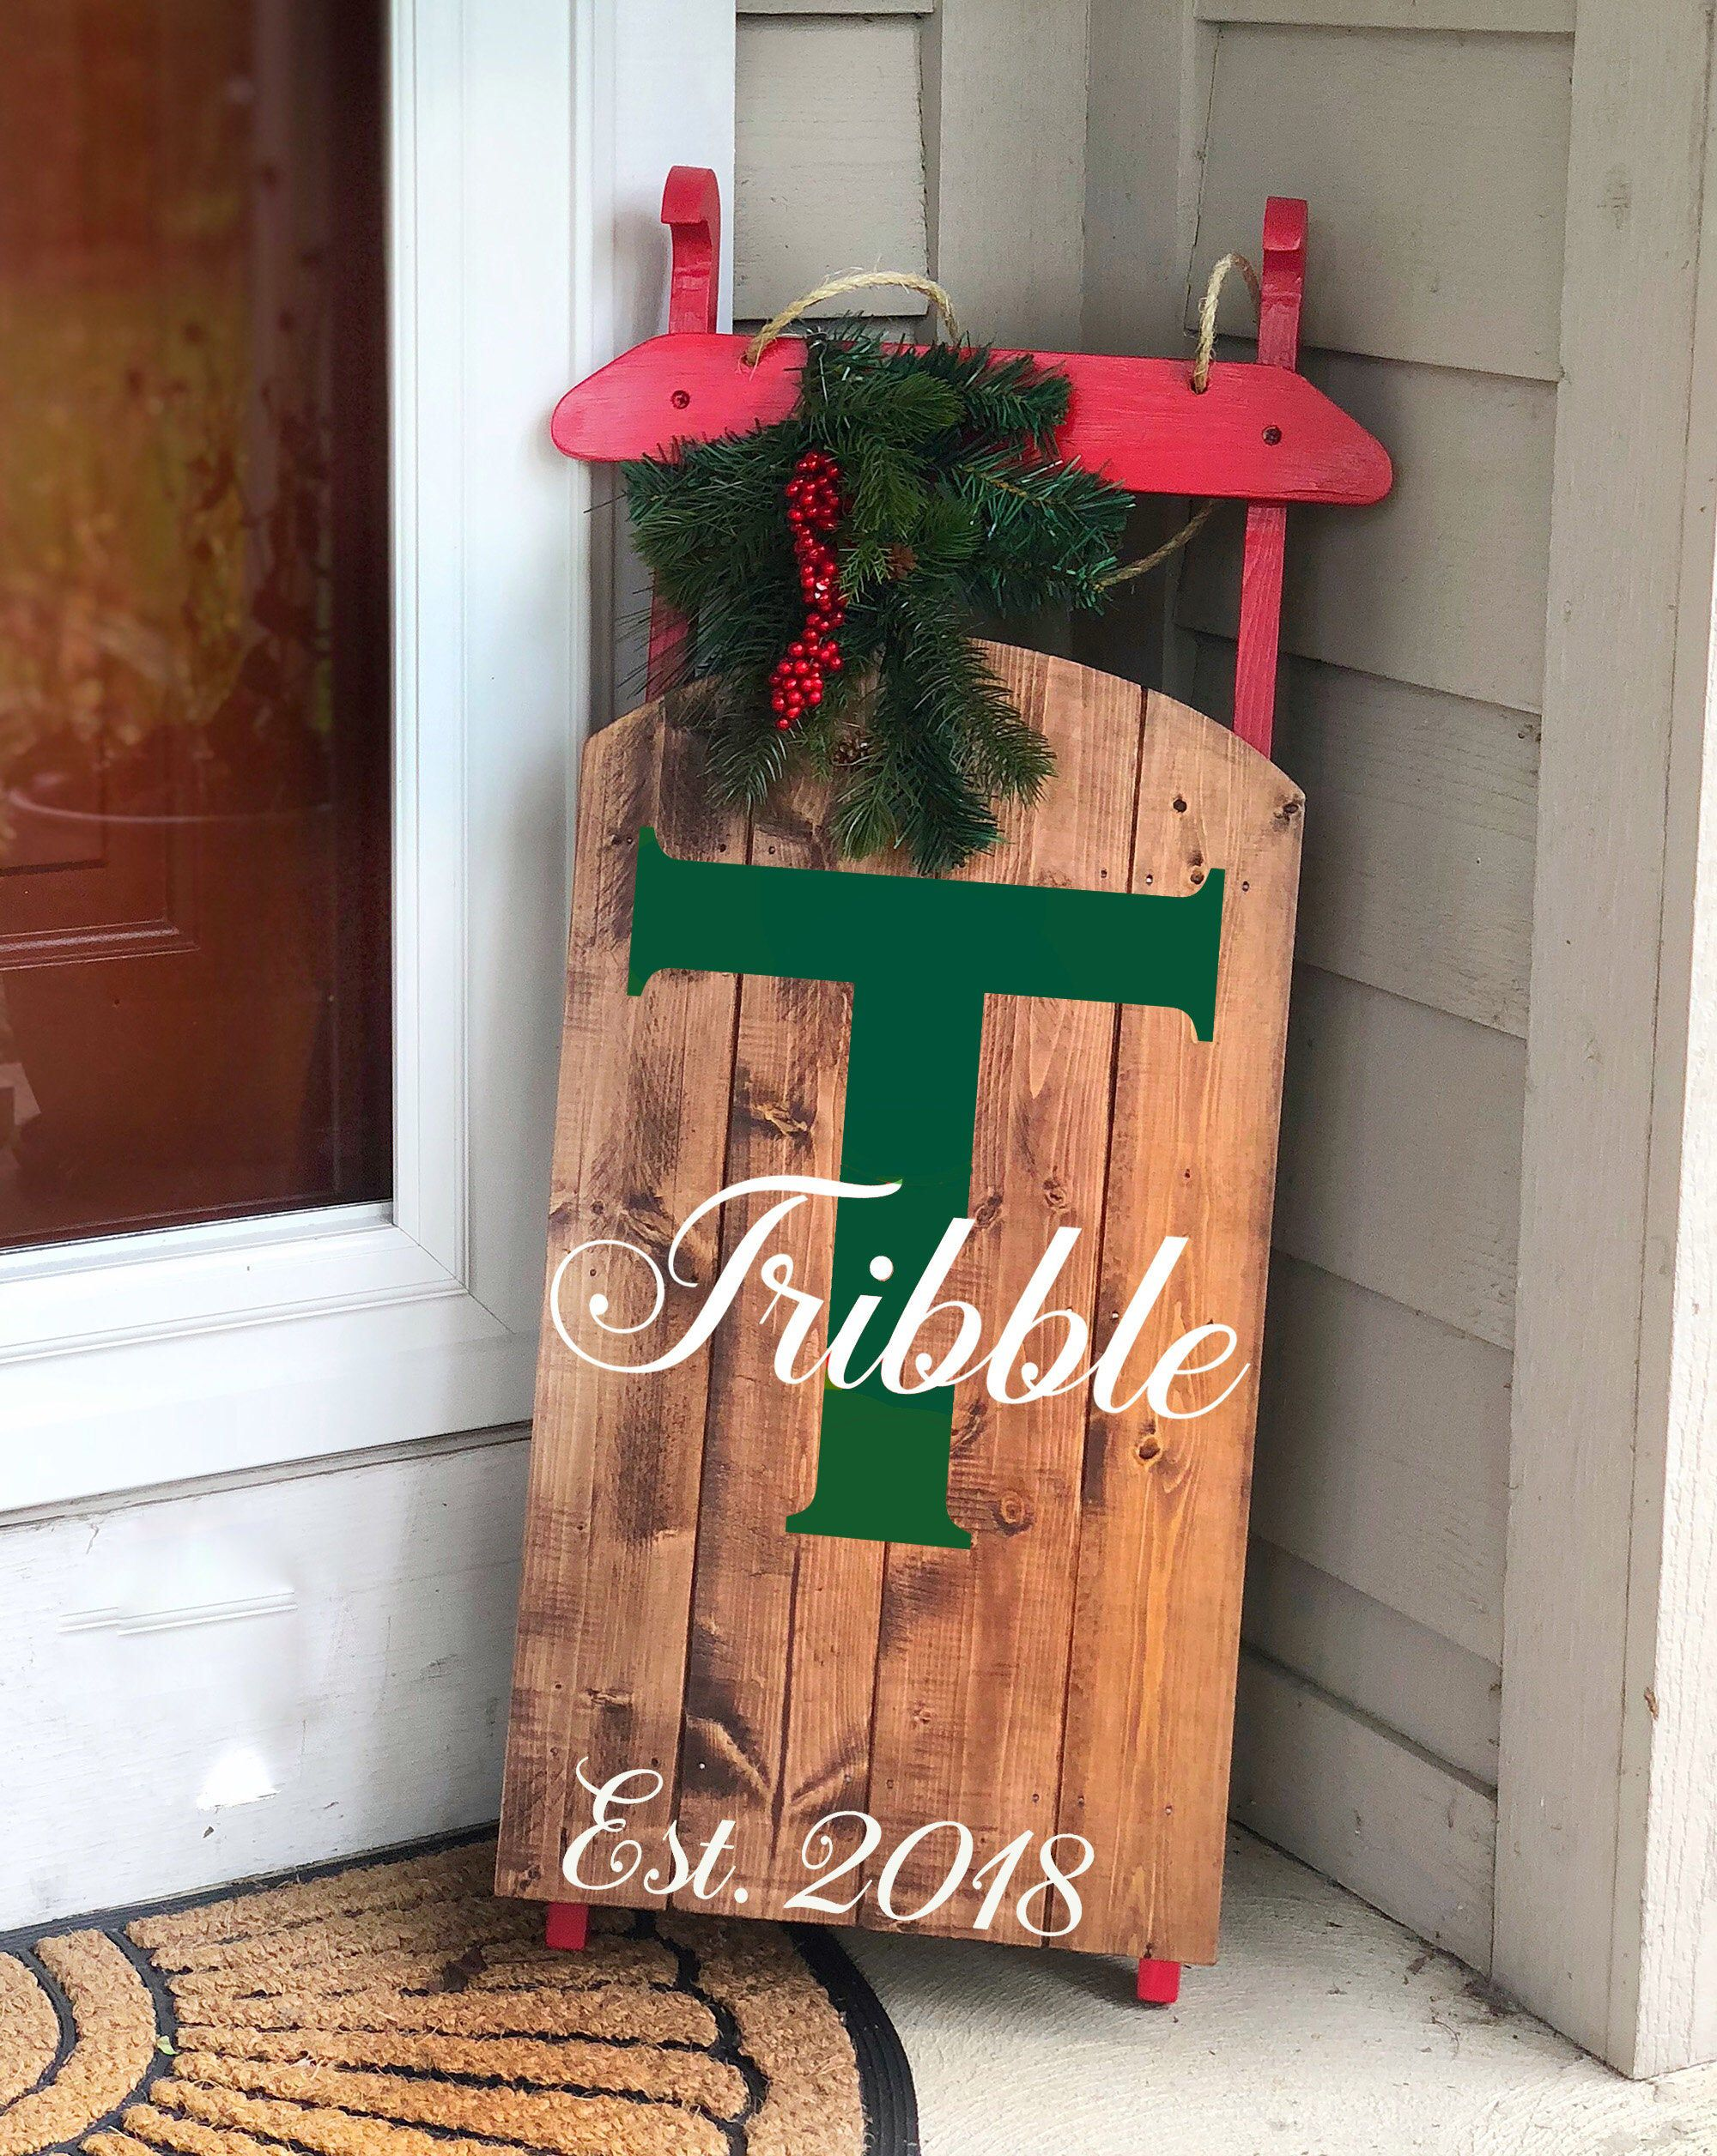 Christmas Decor Personalized Wooden Sled Holiday Porch Etsy Outdoor Holiday Decor Sled Decor Christmas Sled